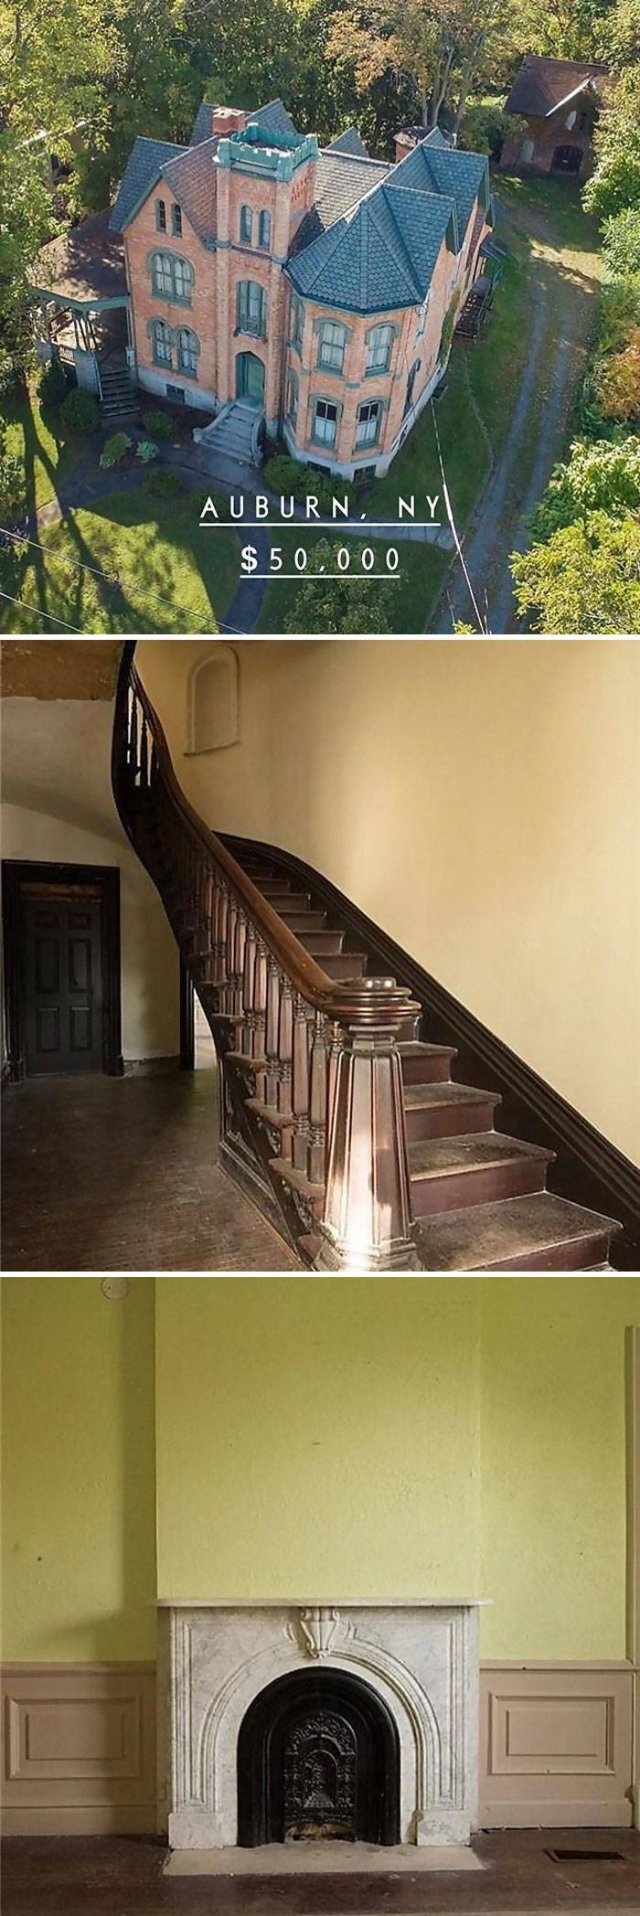 Cheap Old Houses (30 pics)